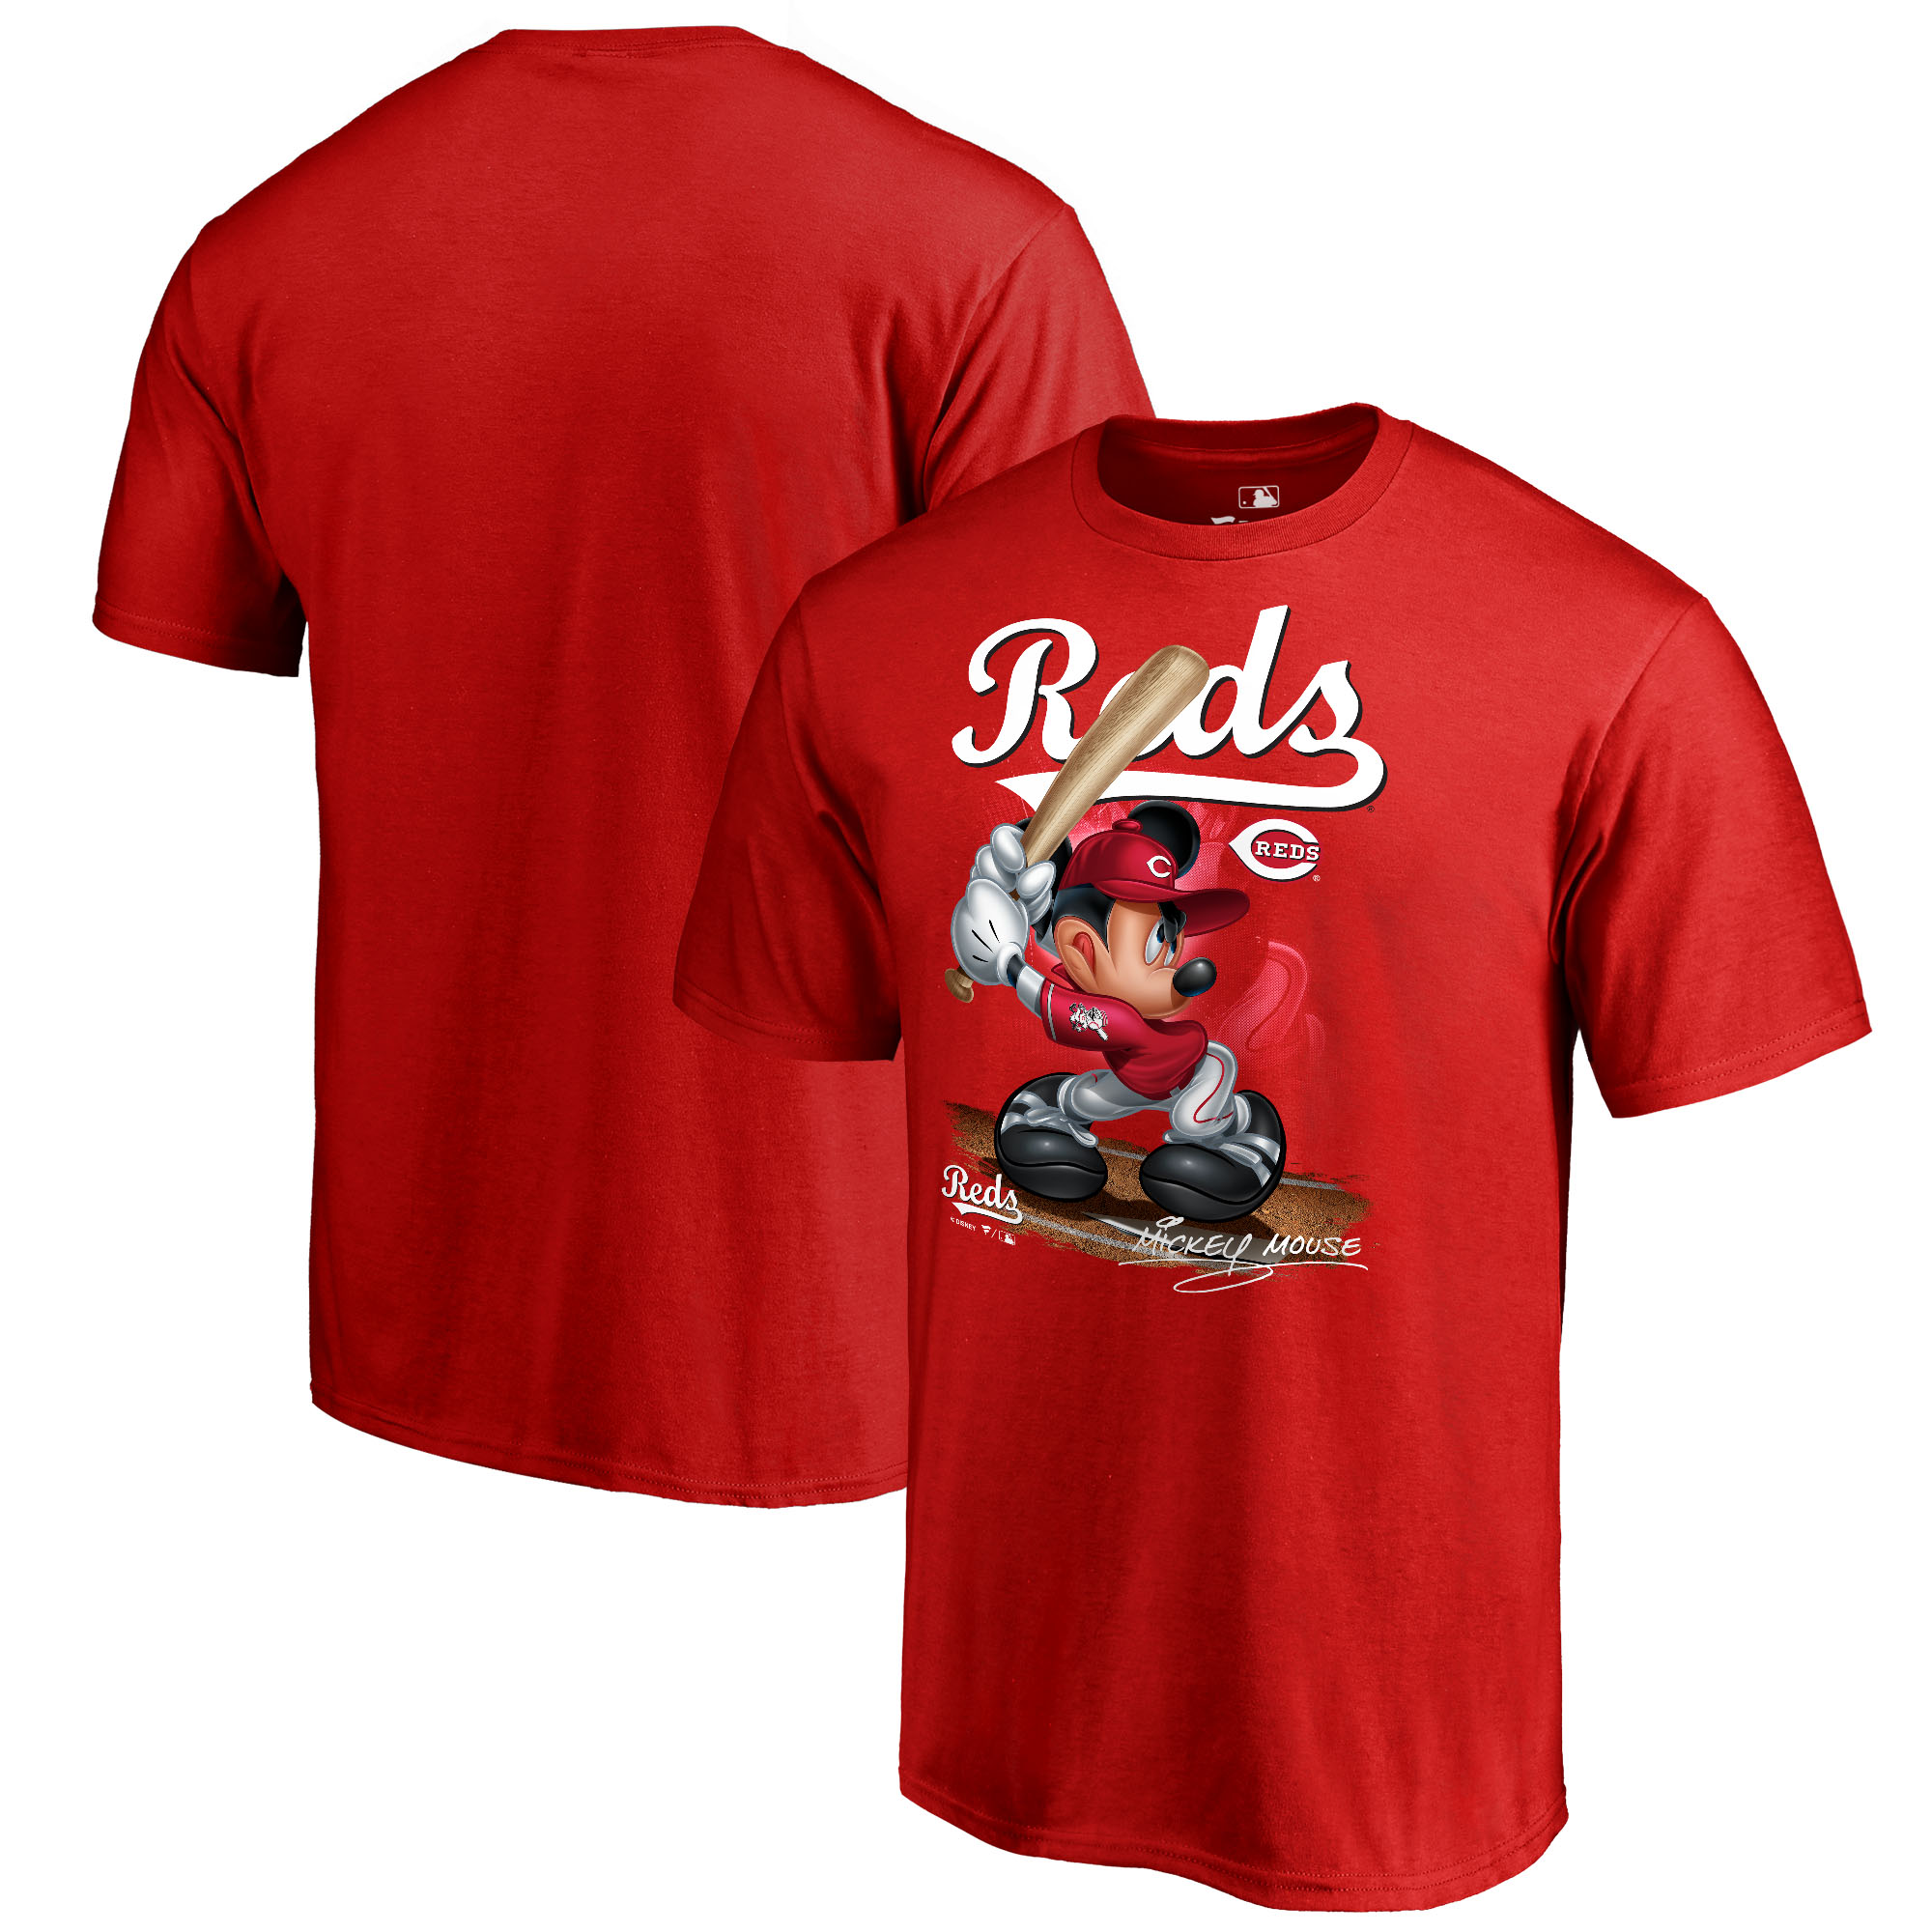 Cincinnati Reds Fanatics Branded Youth Disney All Star T-Shirt - Red